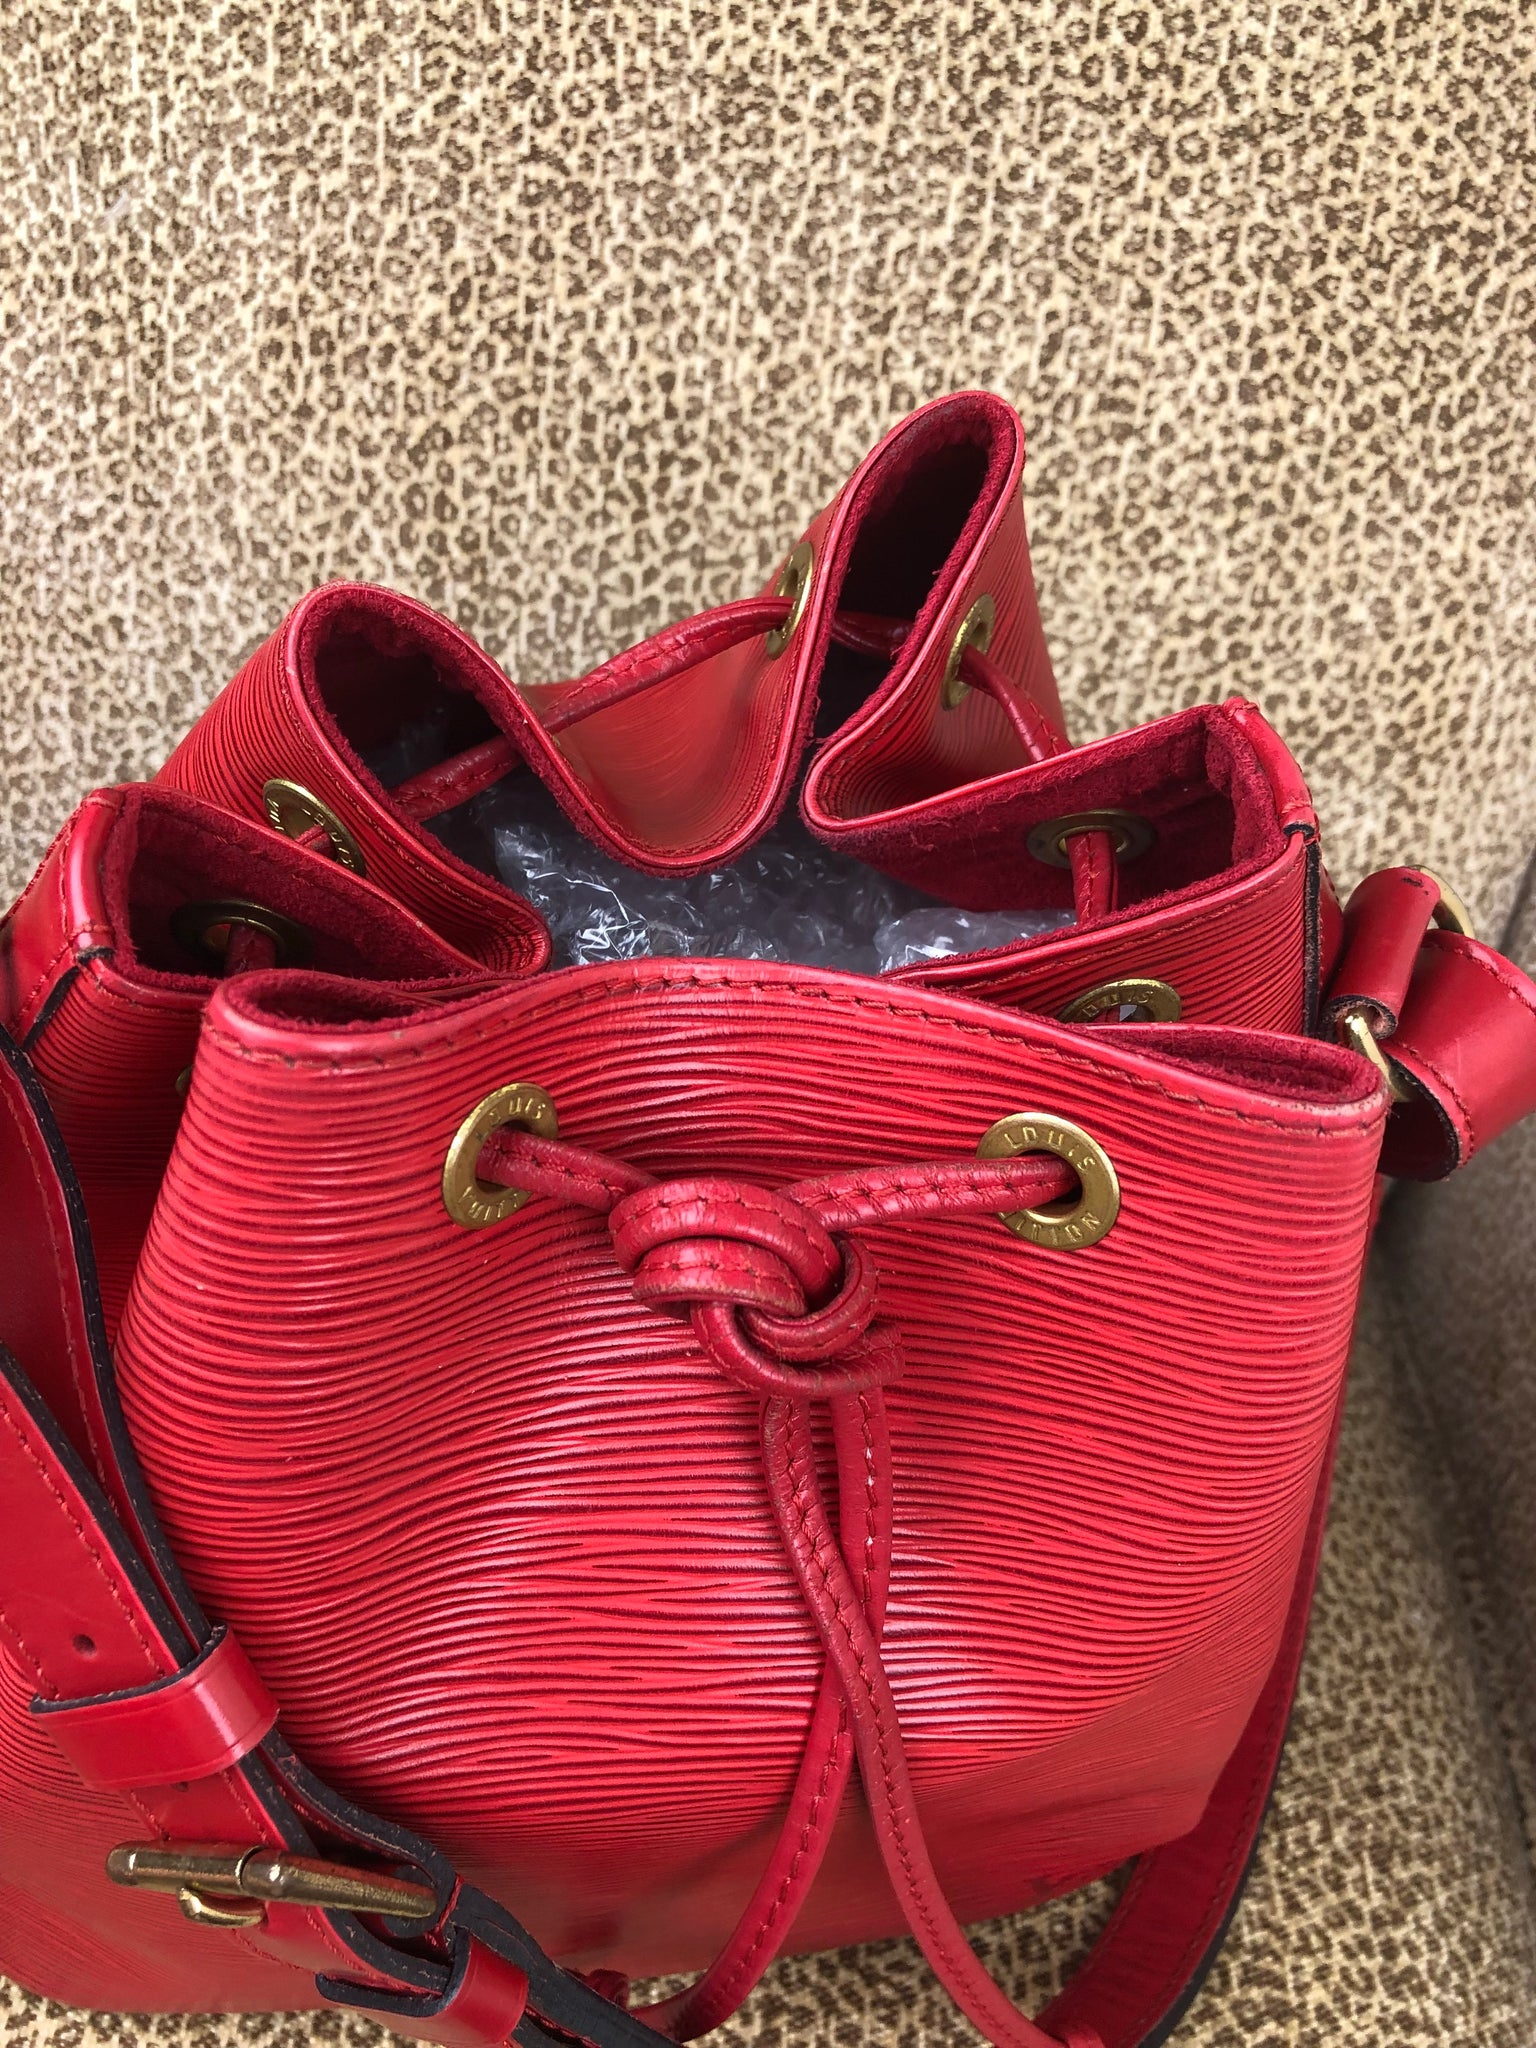 LOUIS VUITTON Red EPI Noe PM Bucket Bag